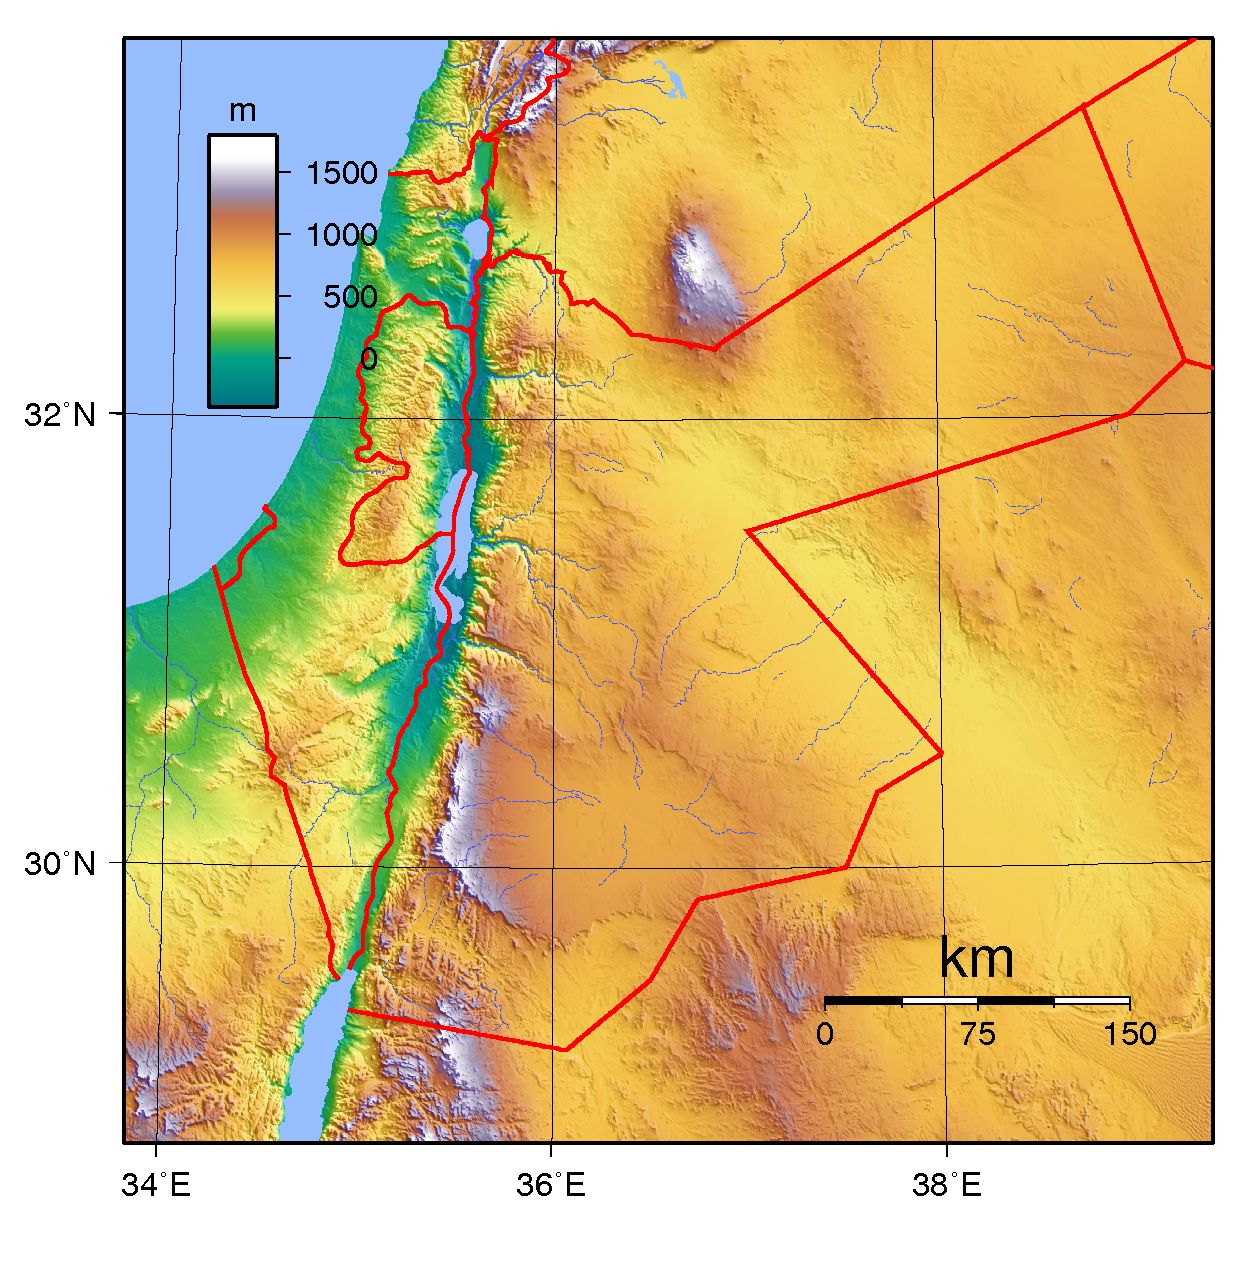 topographic map of ancient israel Image Result For Israel Topographic Map Topographic Map Middle